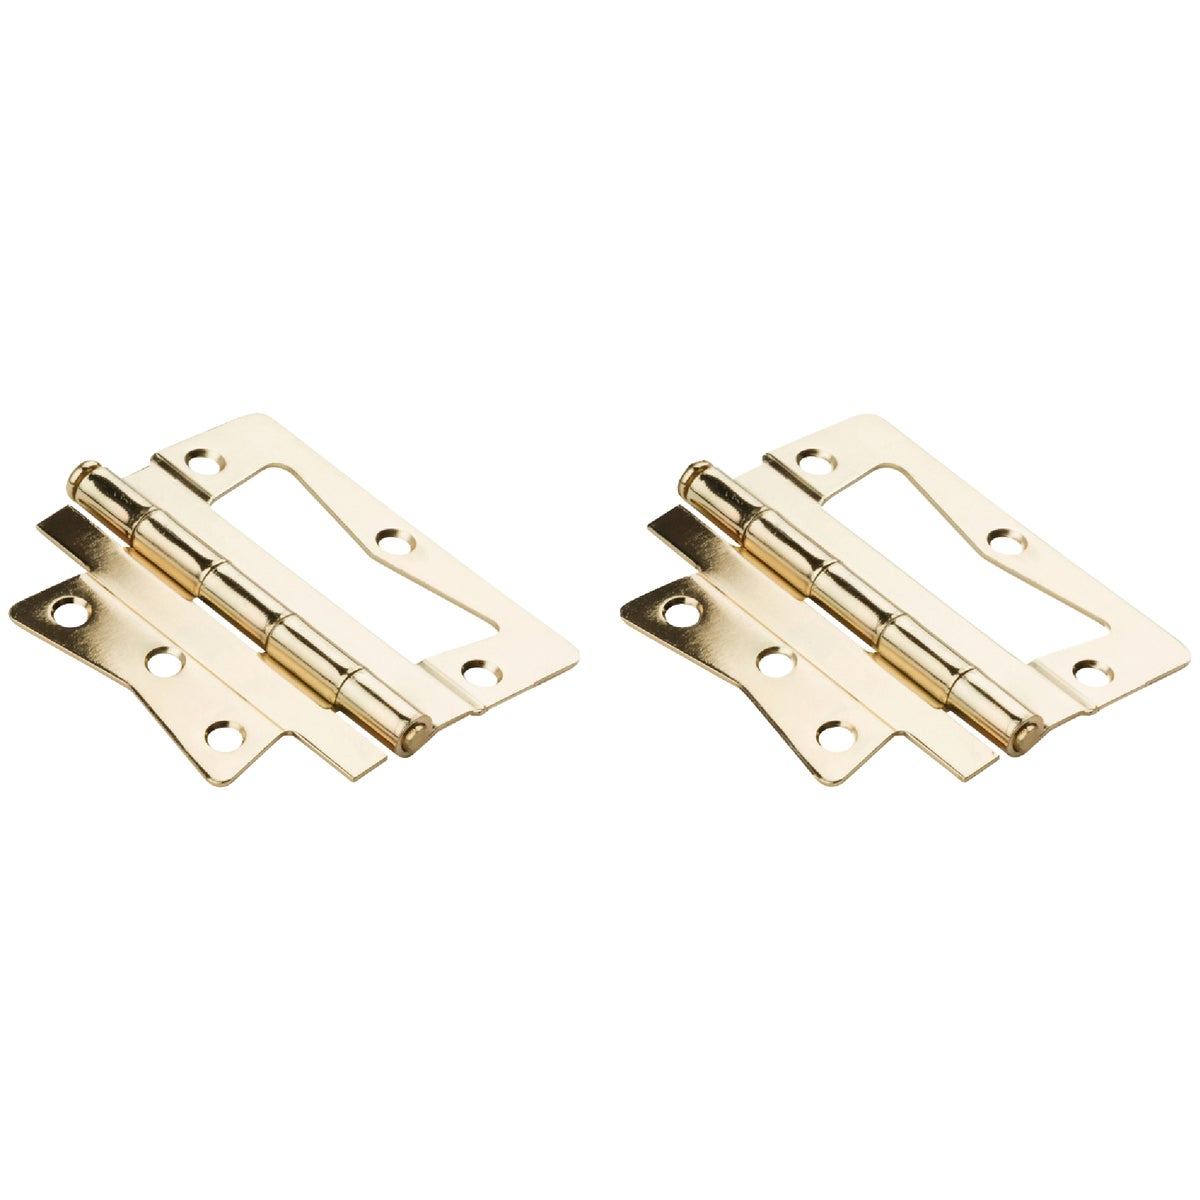 4X4 NONMORTISE HINGE - N244822 by National Mfg Co